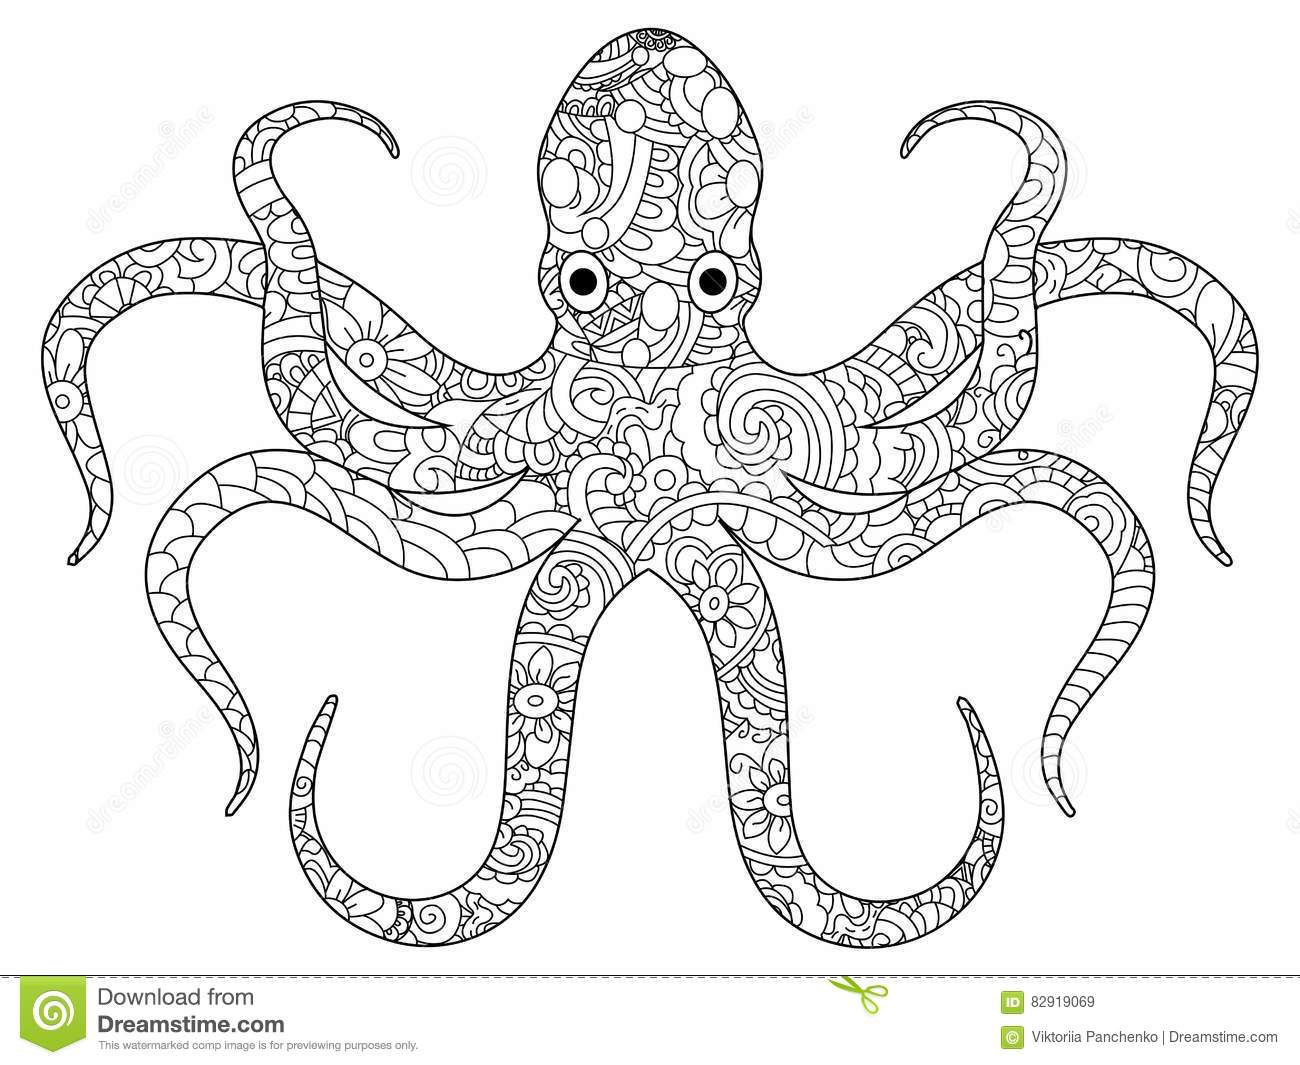 Realistic octopus coloring page - digitalspace.info